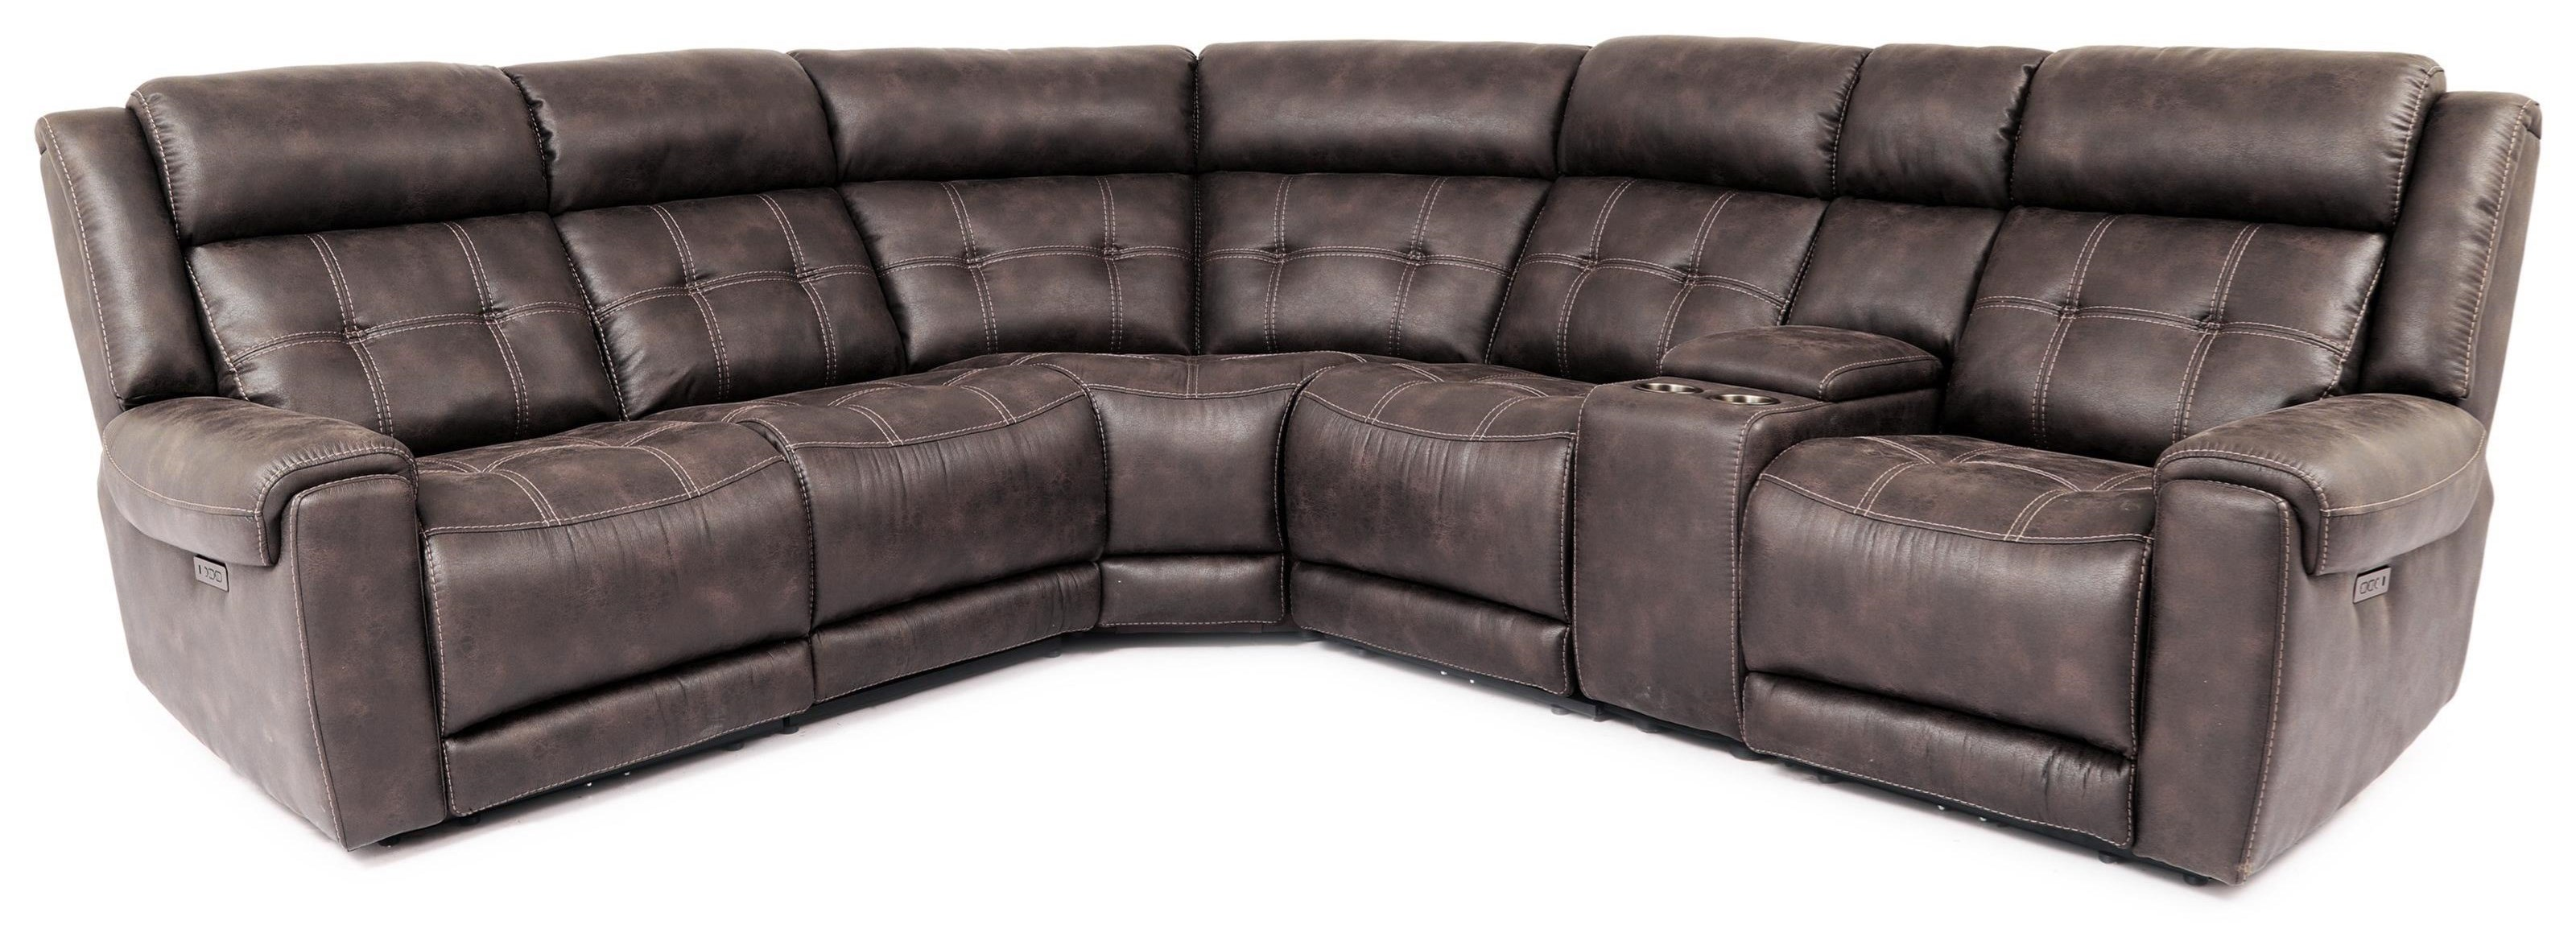 70115 6-Piece Power Reclining Sectional by Cheers at Sam Levitz Furniture